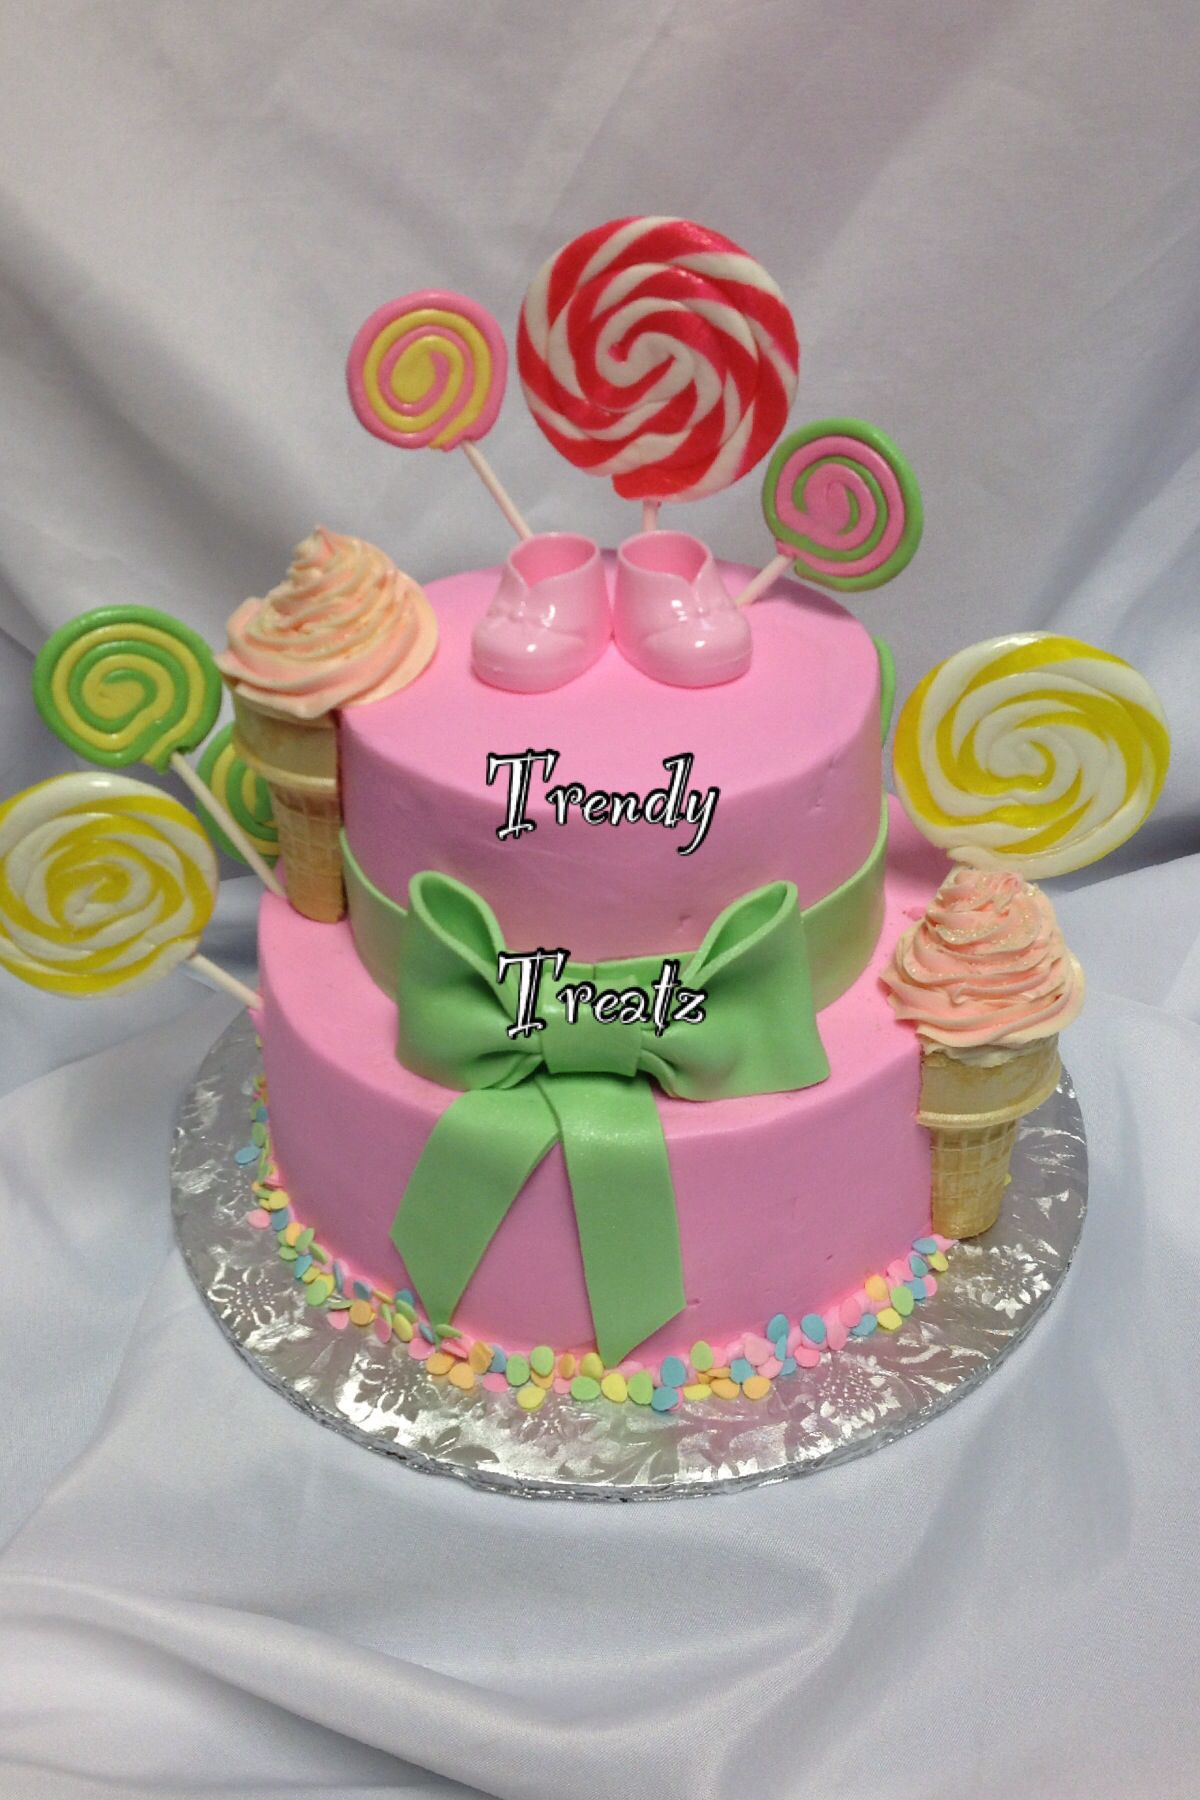 baby shower cake candy land theme cakes by trendy treatz in michiga